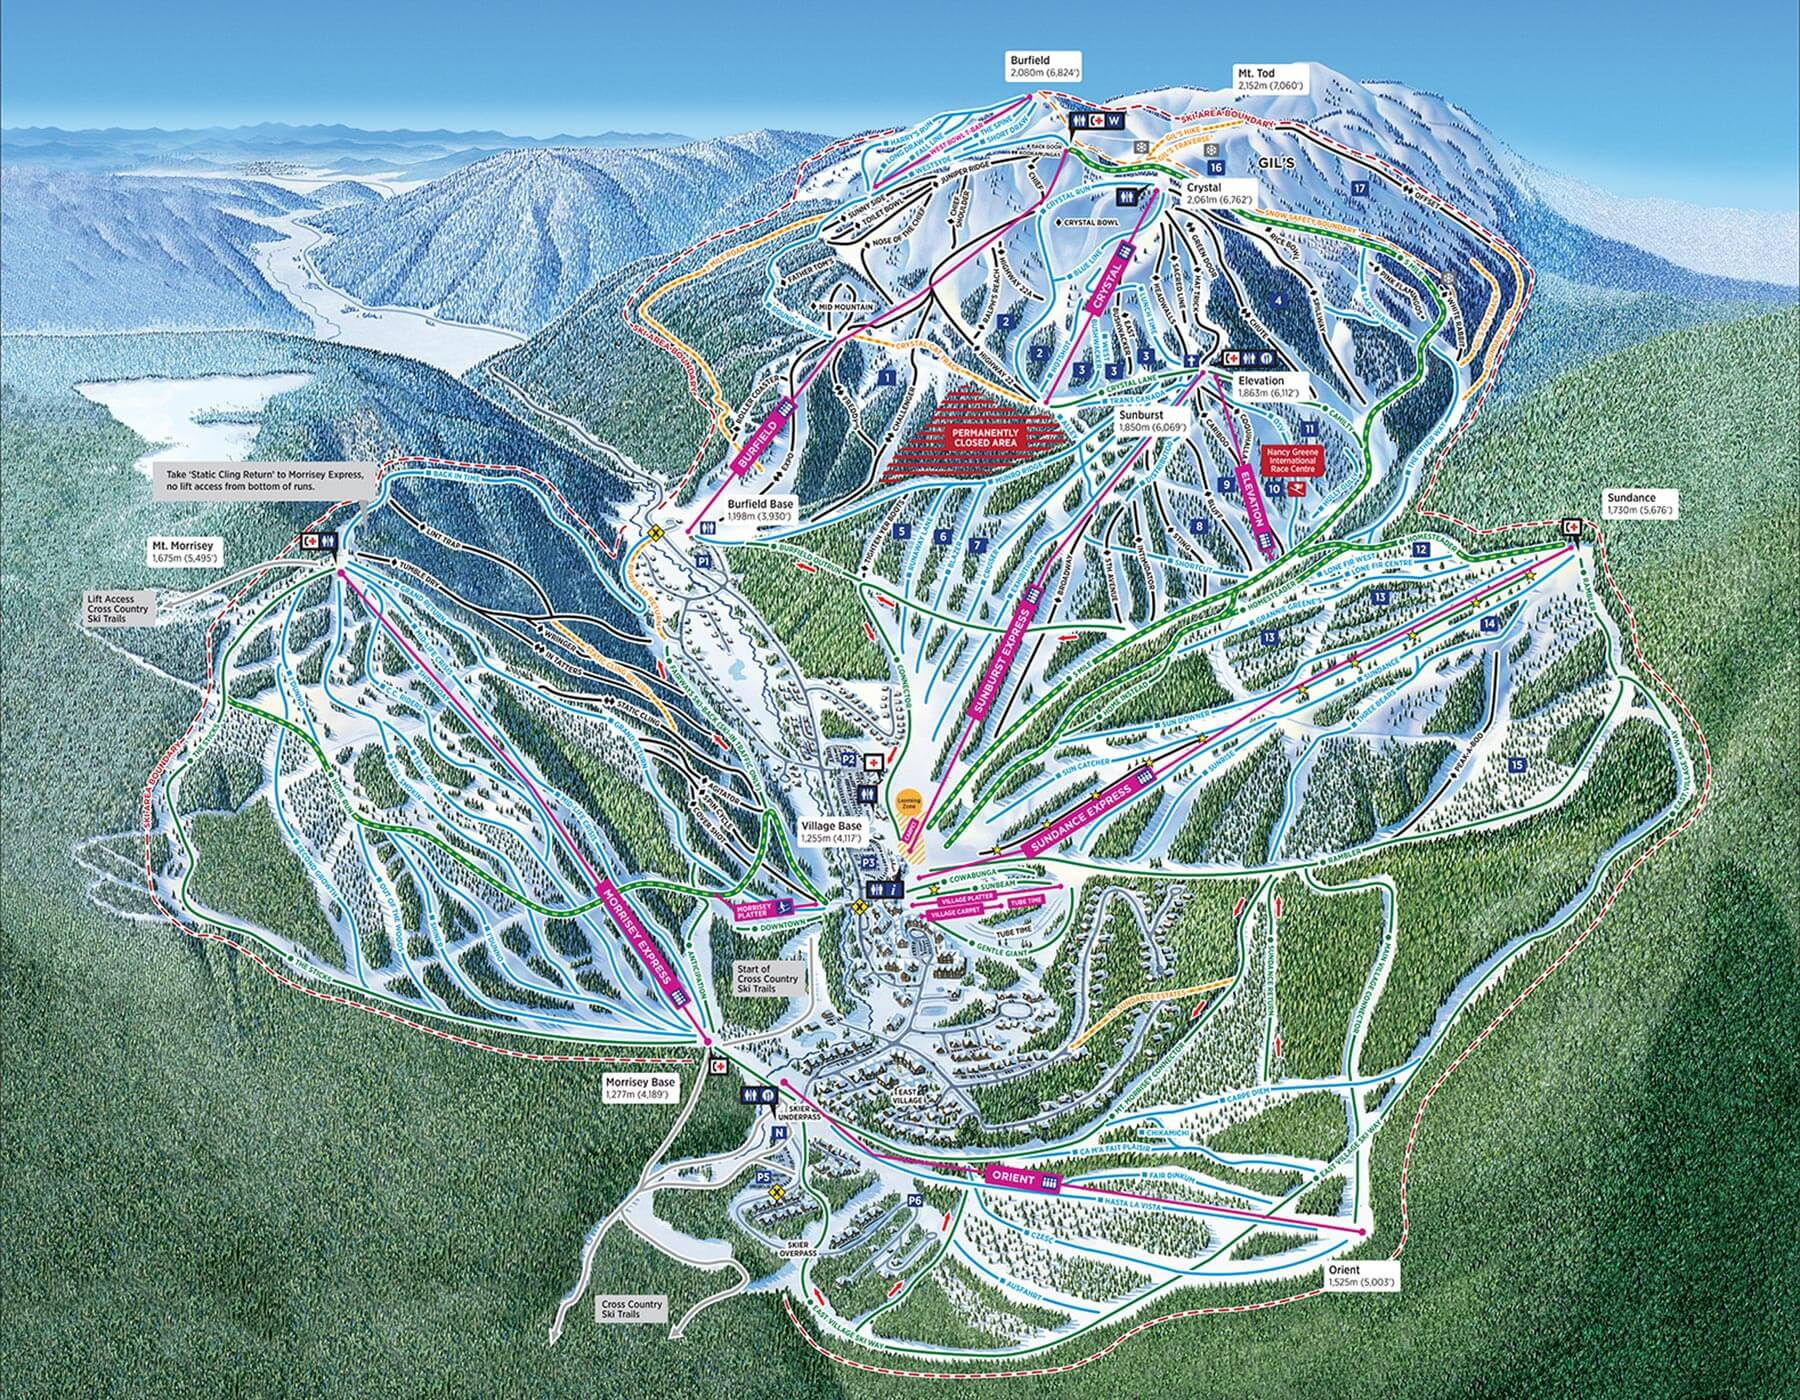 Sun Peaks Resort Trail Map from the 2018/19 Season